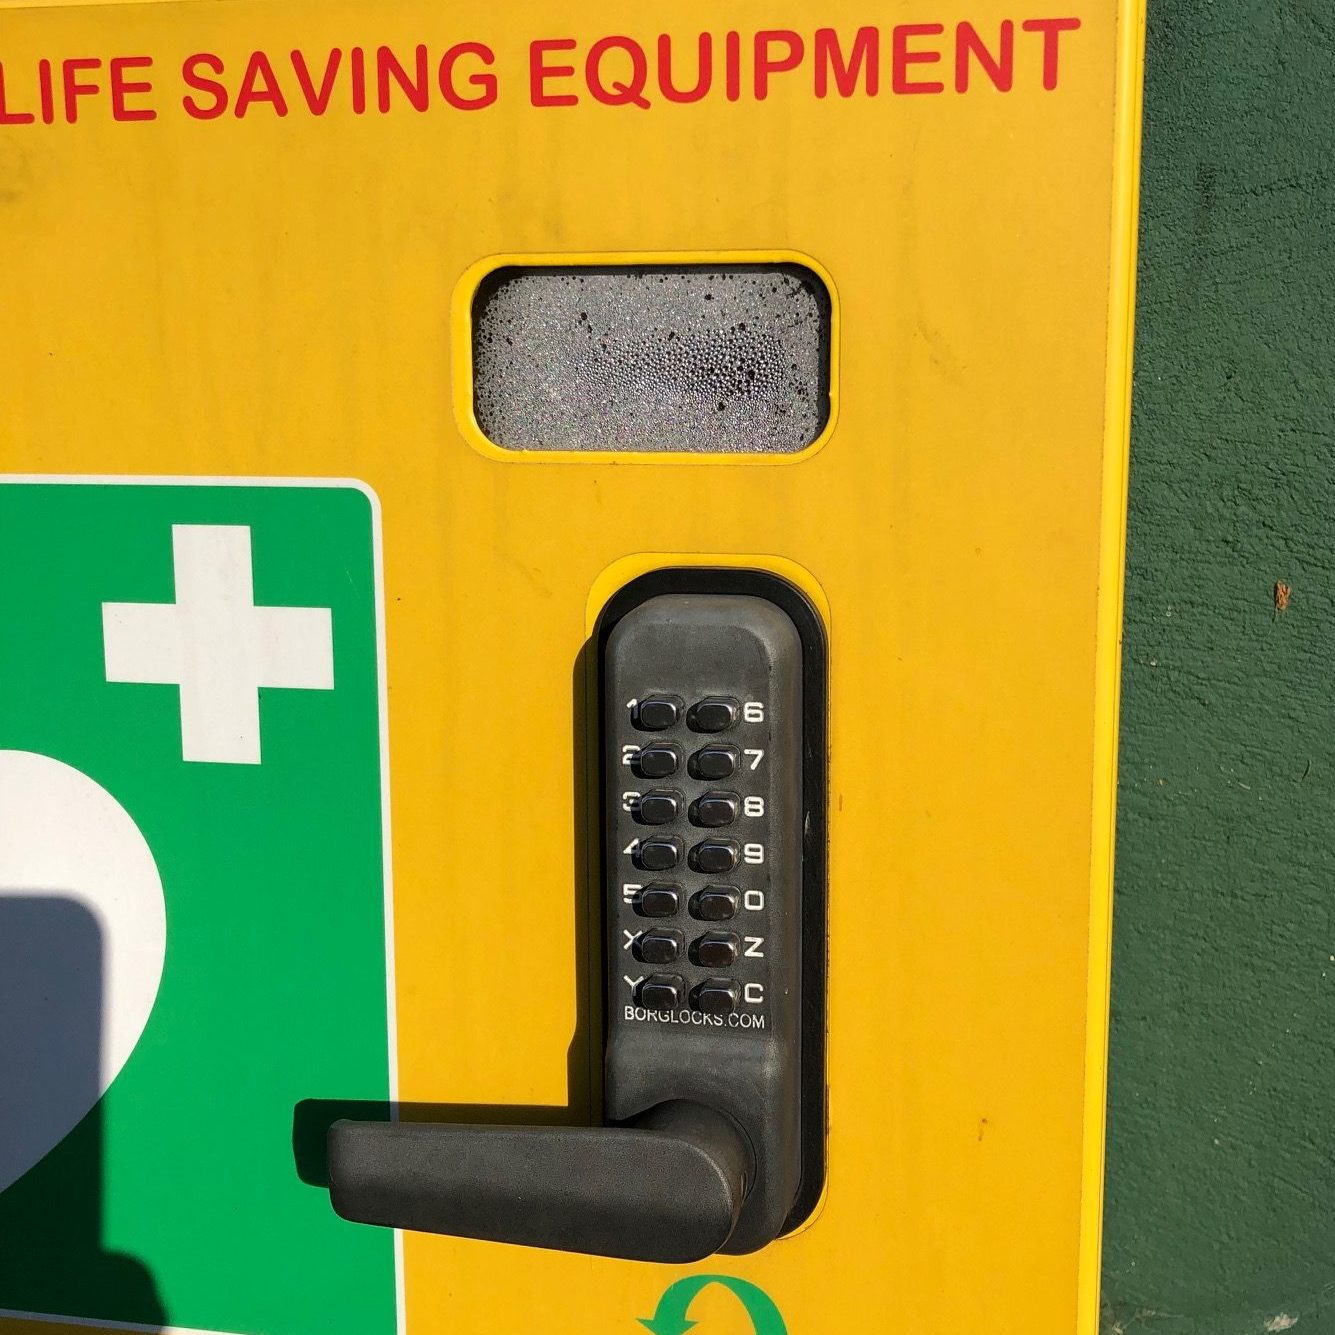 Check your defib cabinet! 4